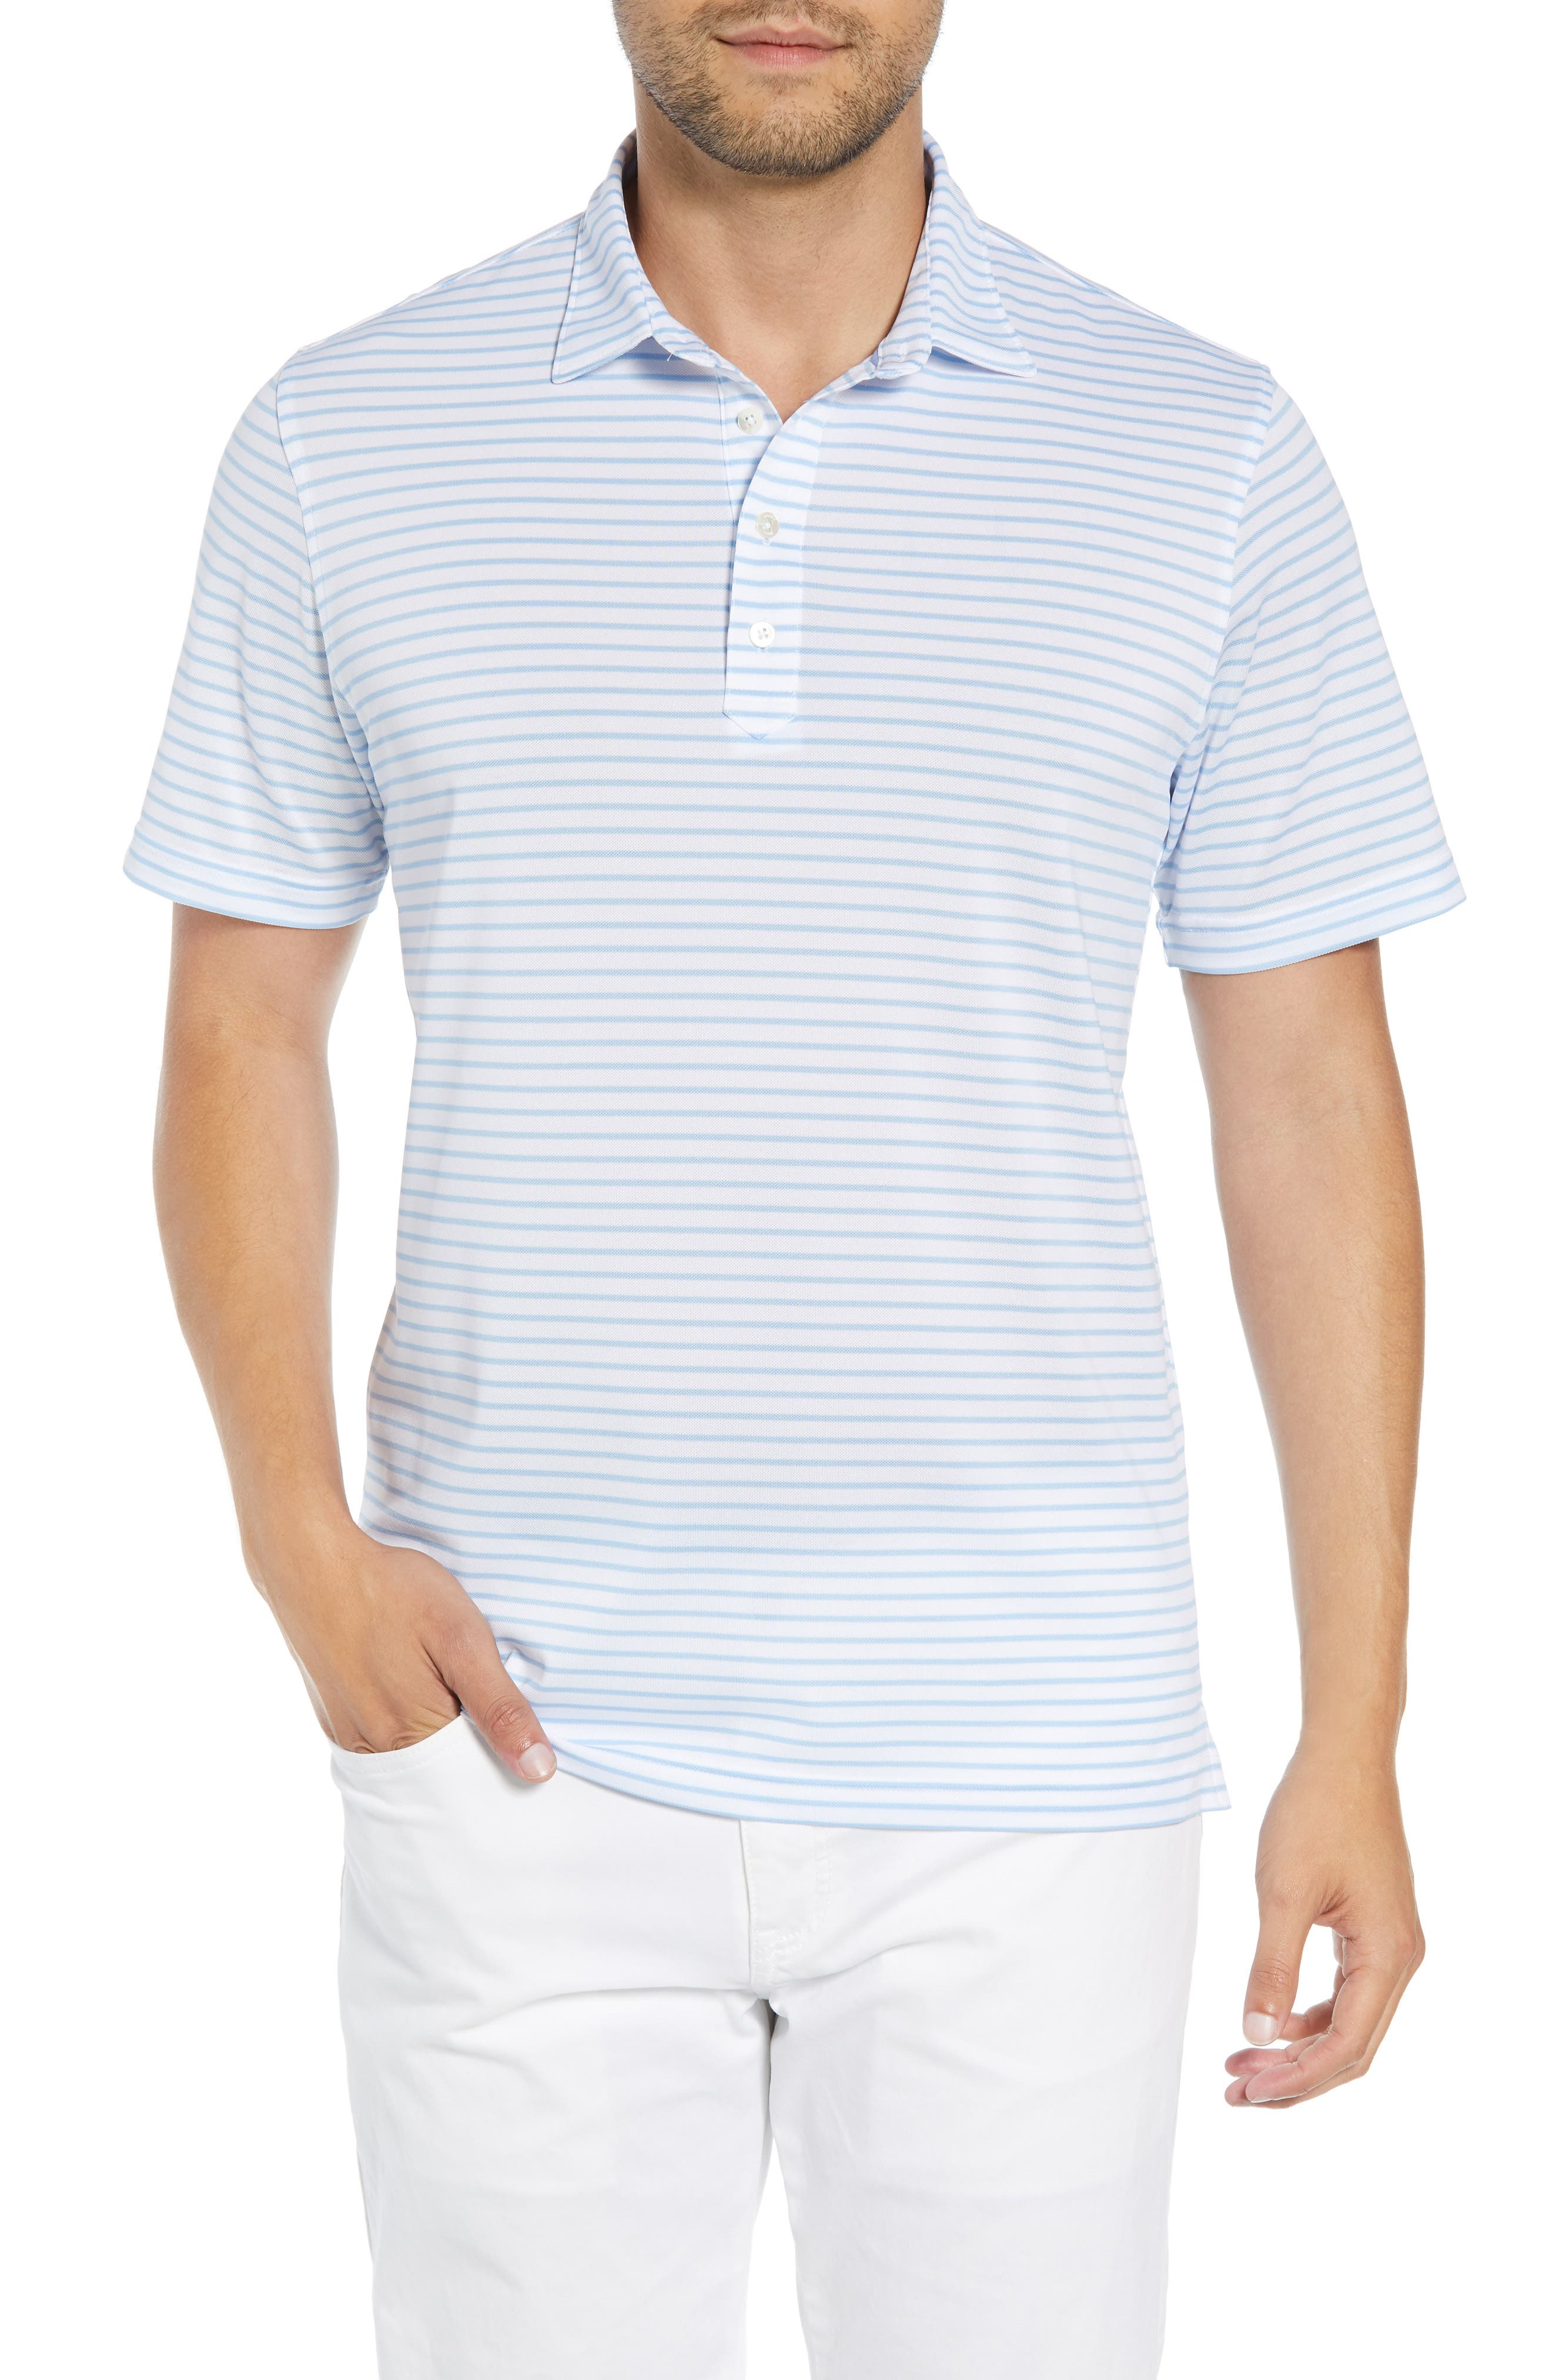 Myers Regular Fit Stripe Prep-Formance Polo,                             Main thumbnail 1, color,                             WHITE/GULFBLUE